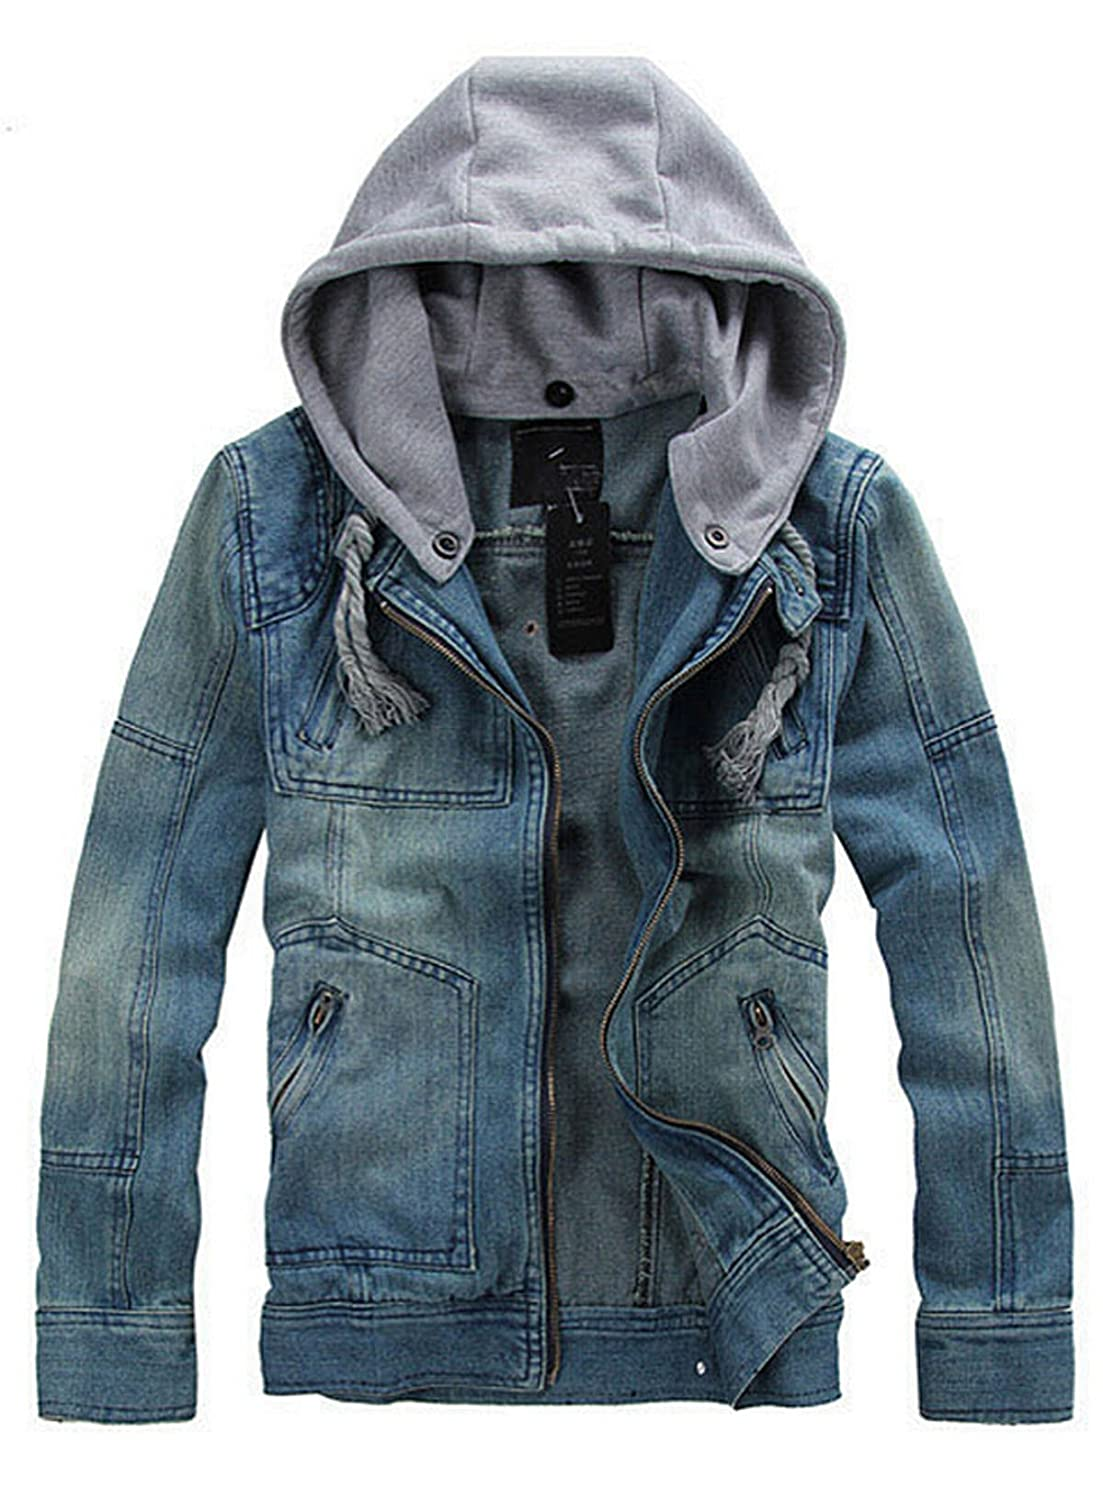 MINID Men's Casual Fashion Denim Jacket (MIDKQ16)